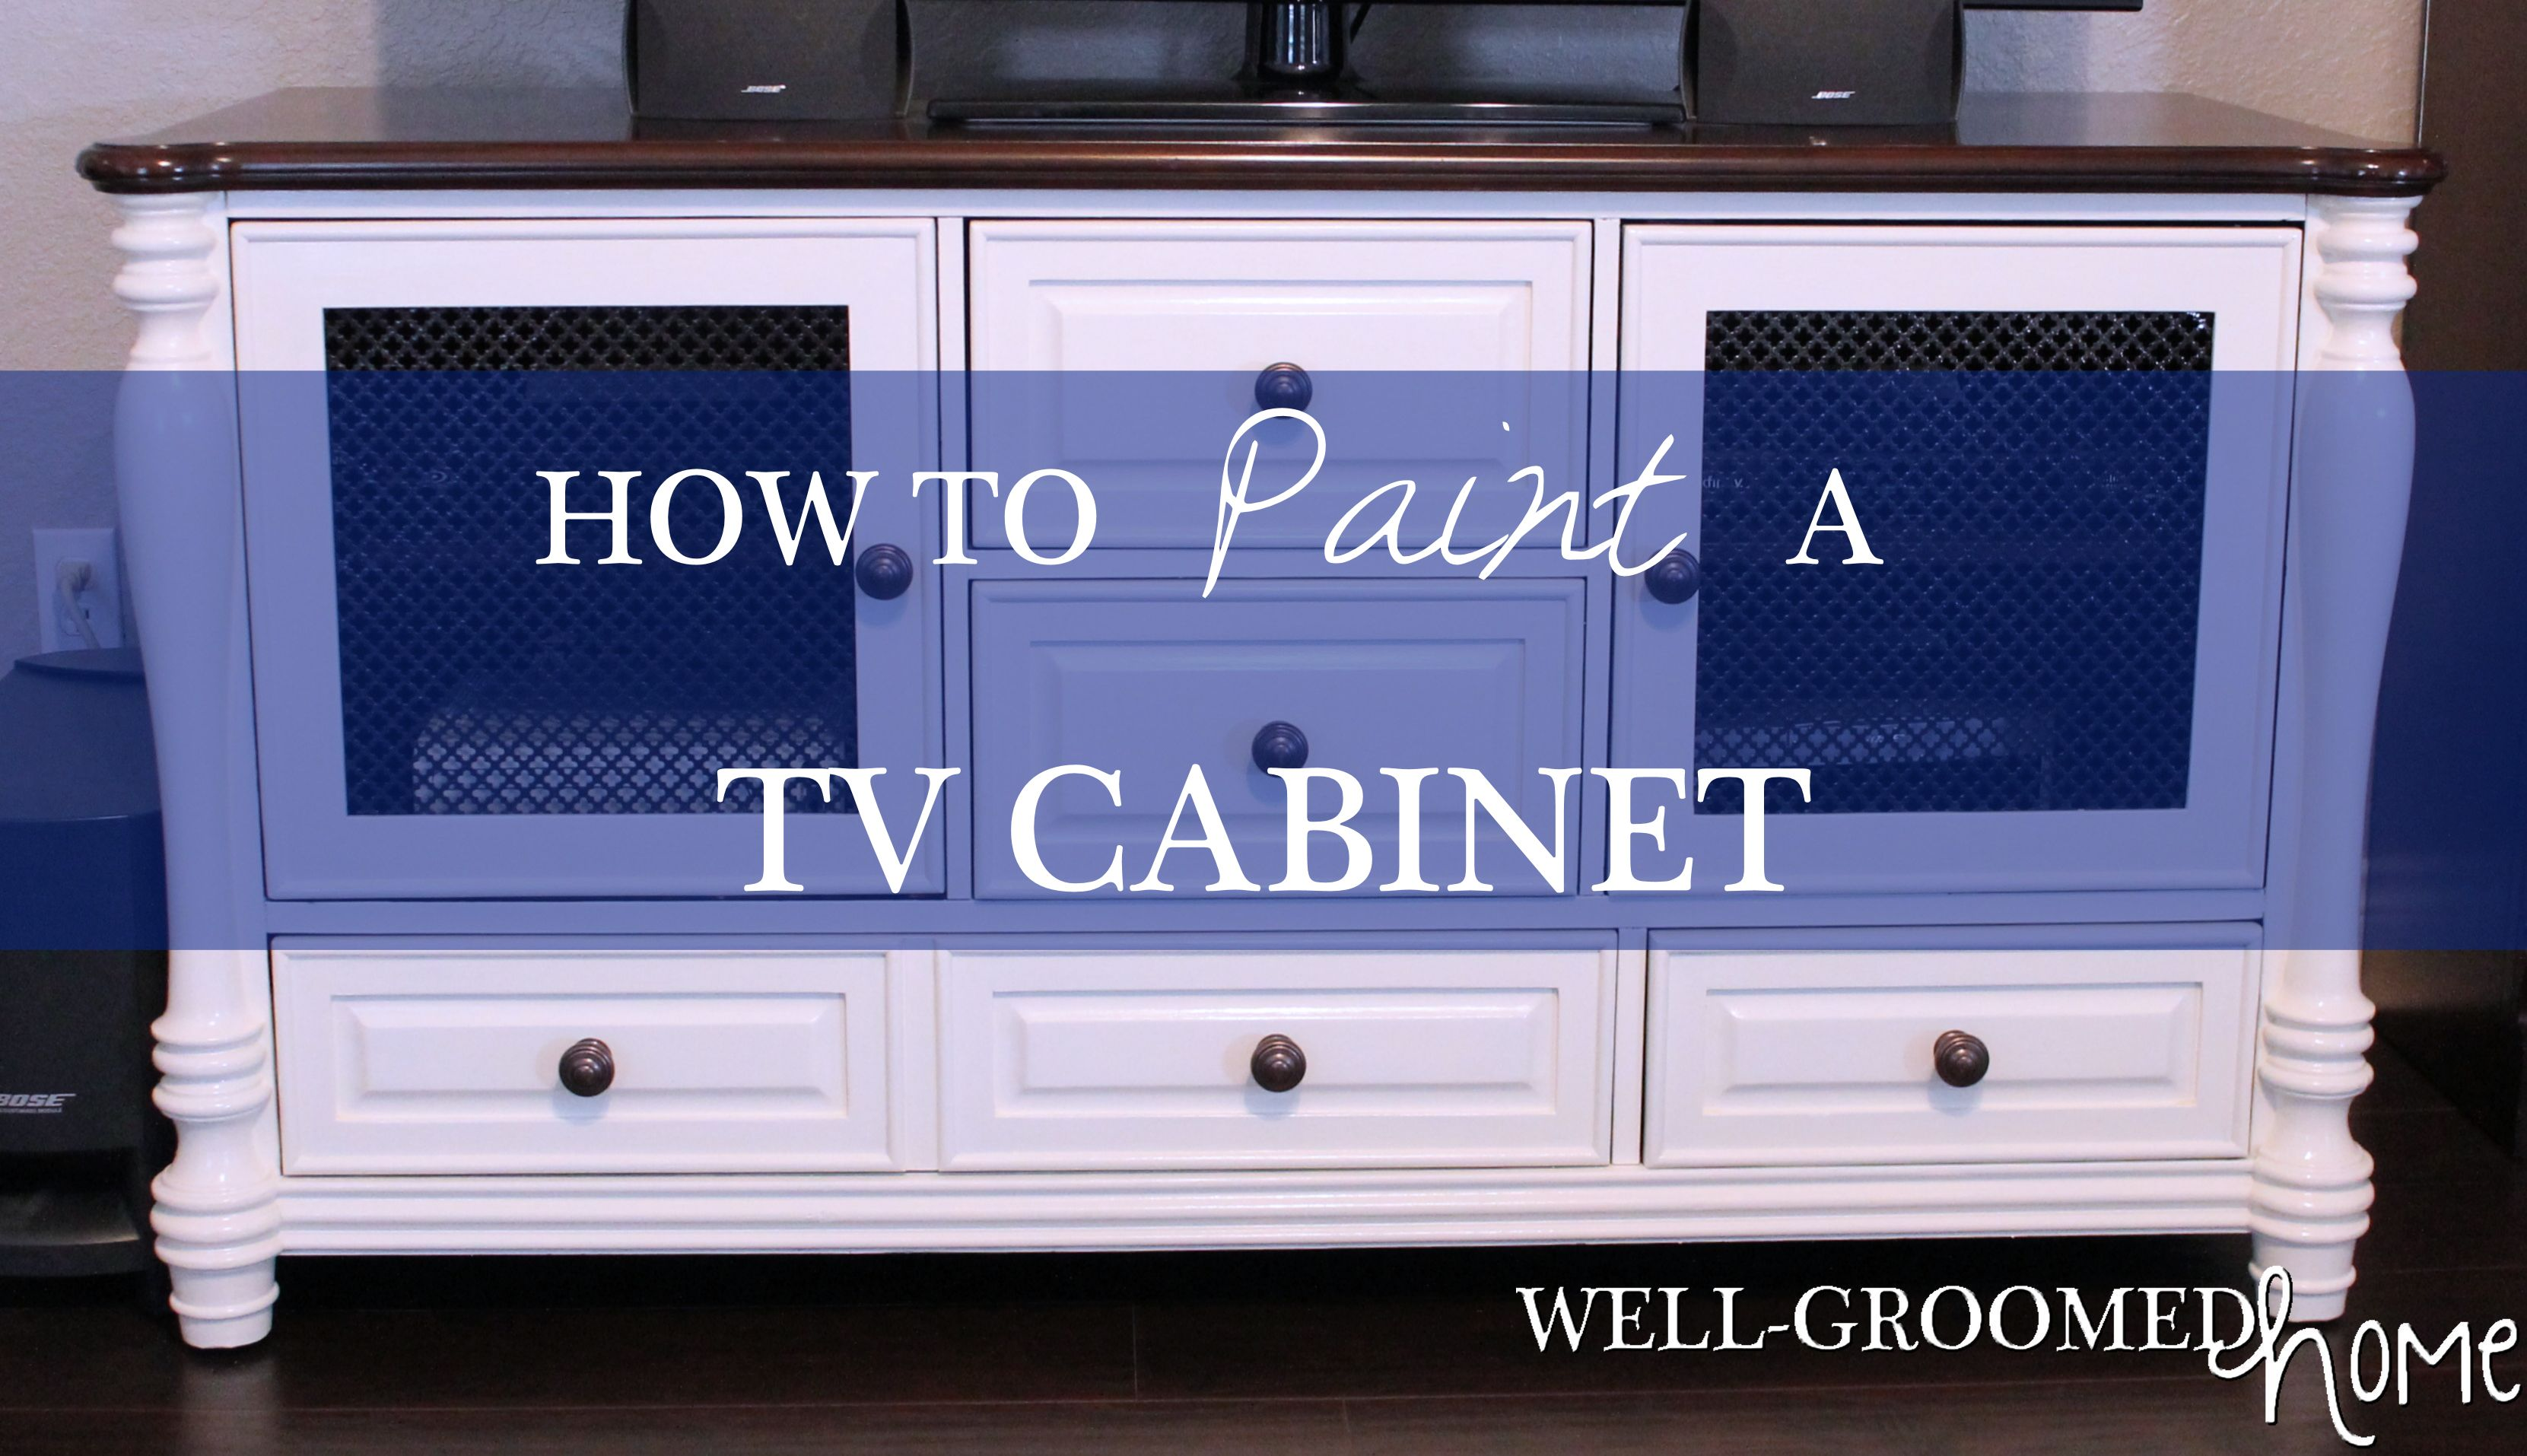 Painting a TV Cabinet - Well-Groomed Home